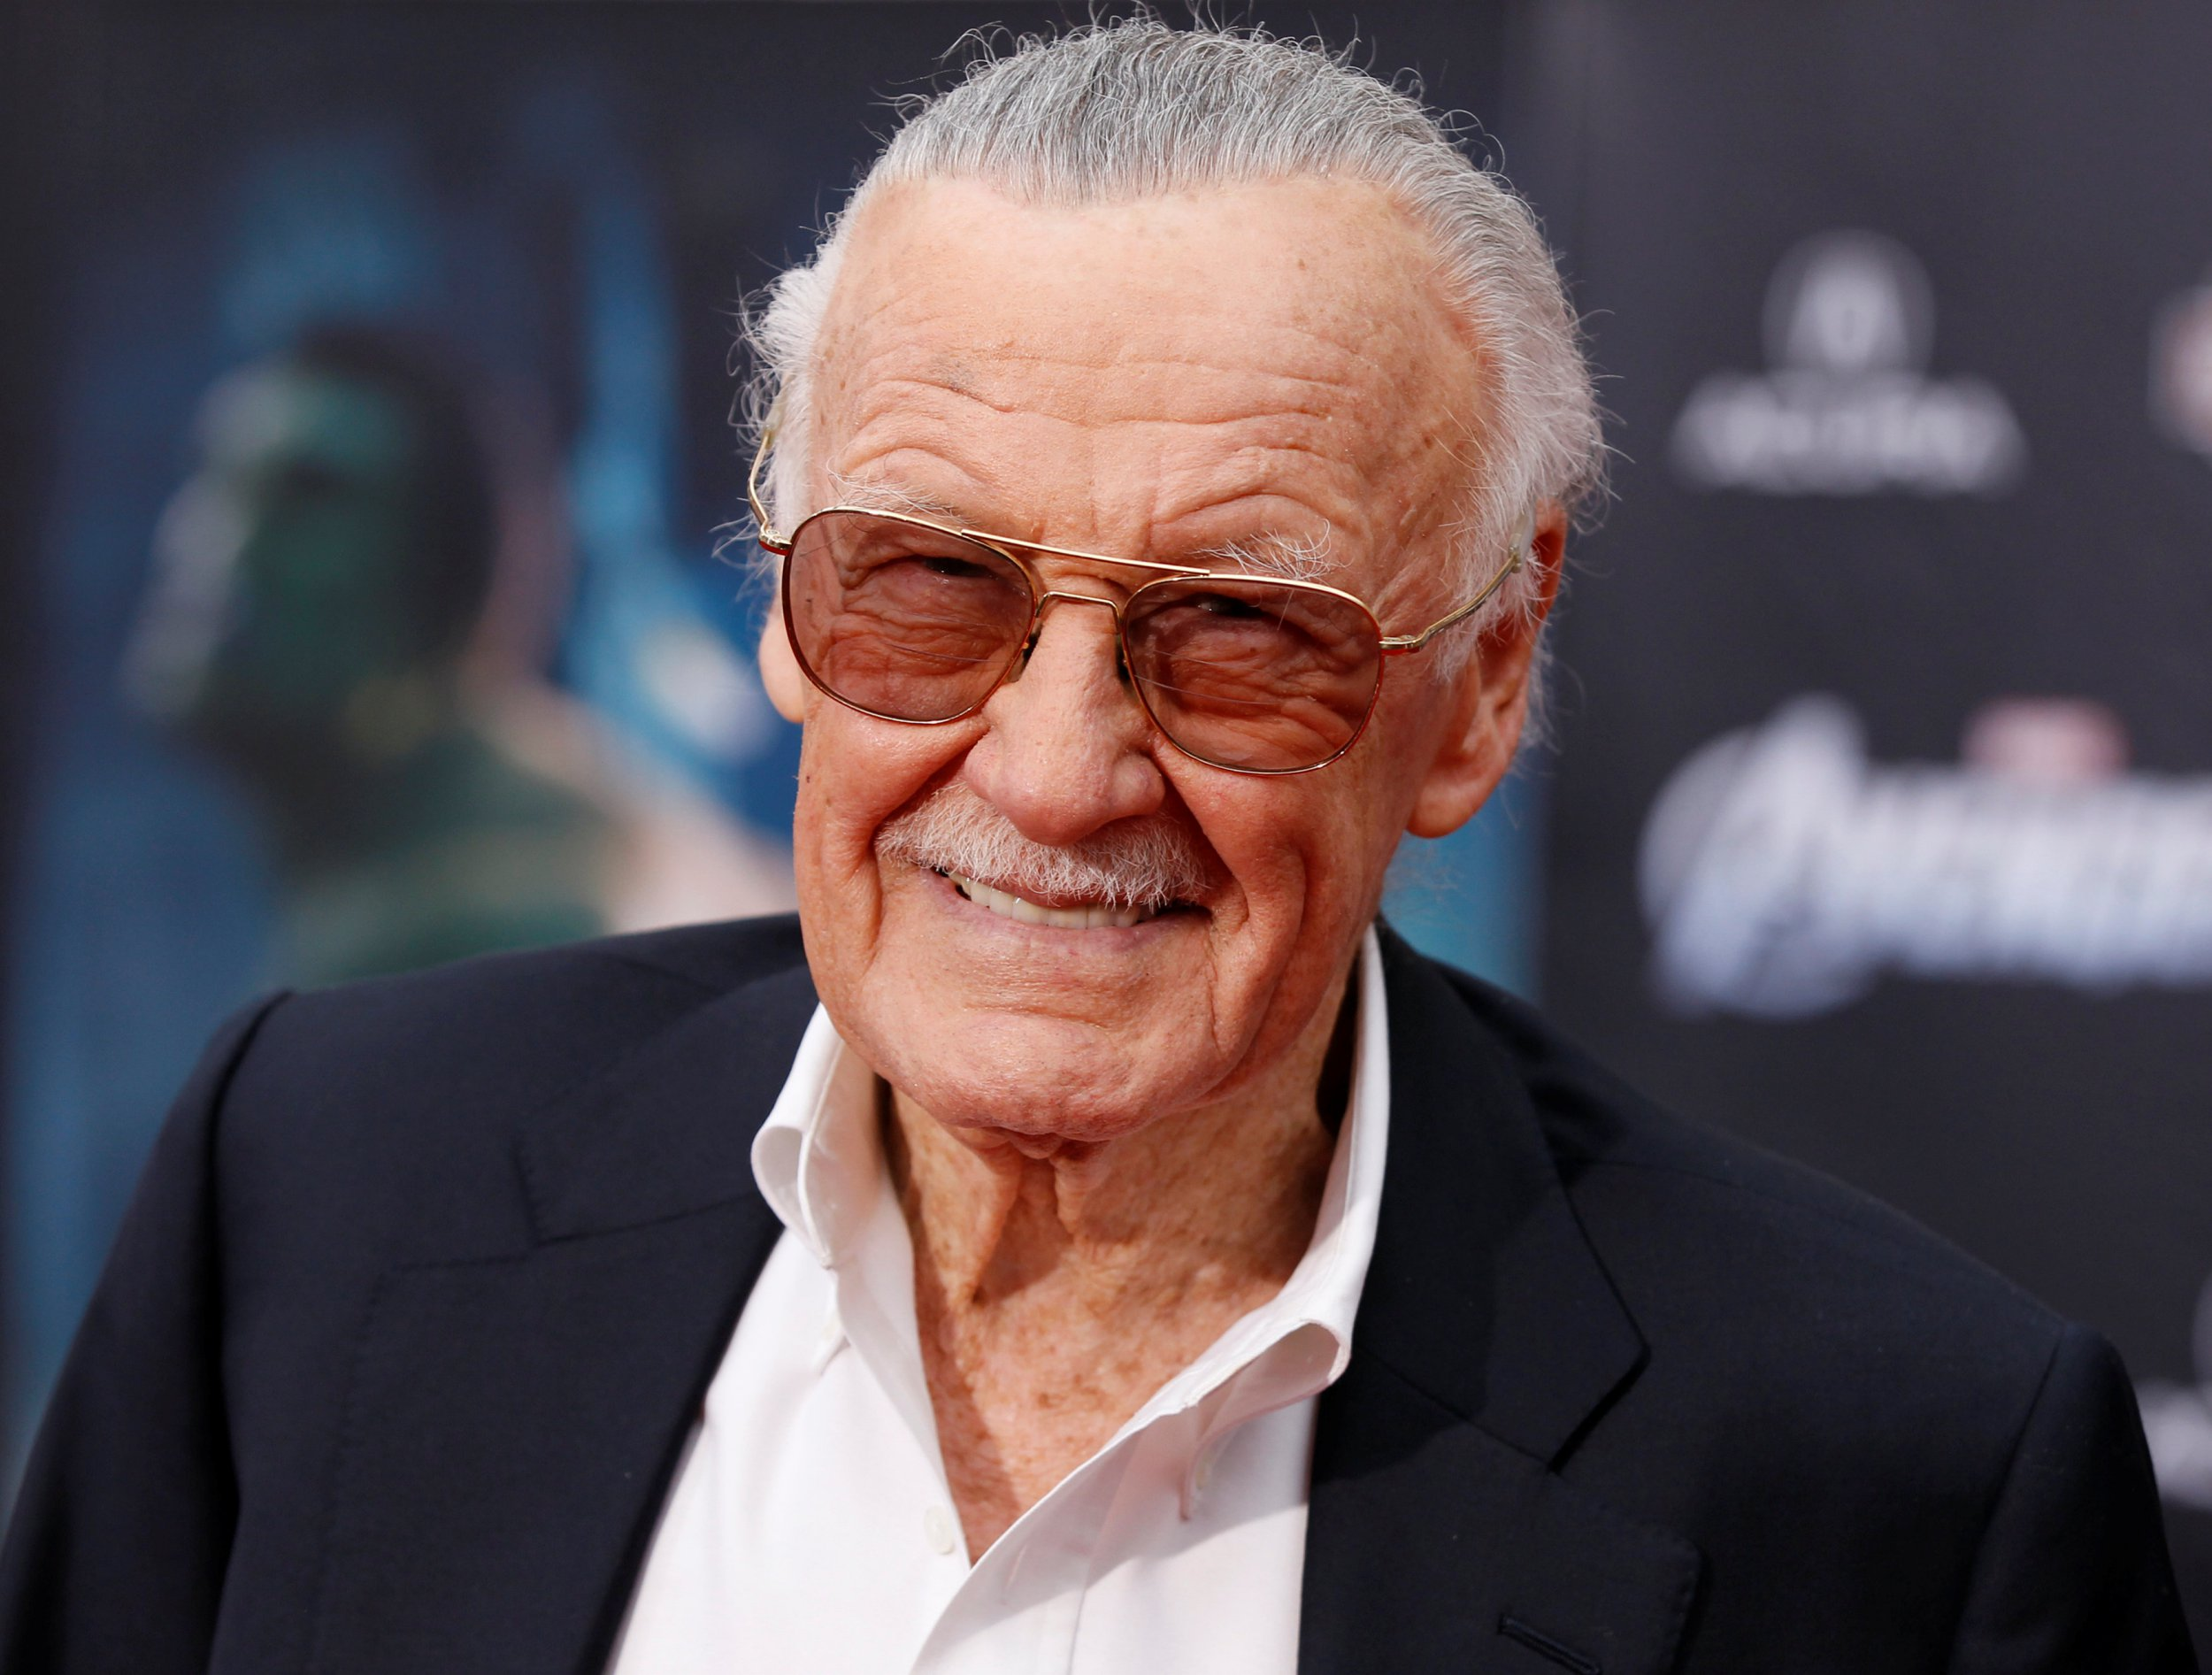 Stan Lee's cause of death listed as 'heart and respiratory failure'